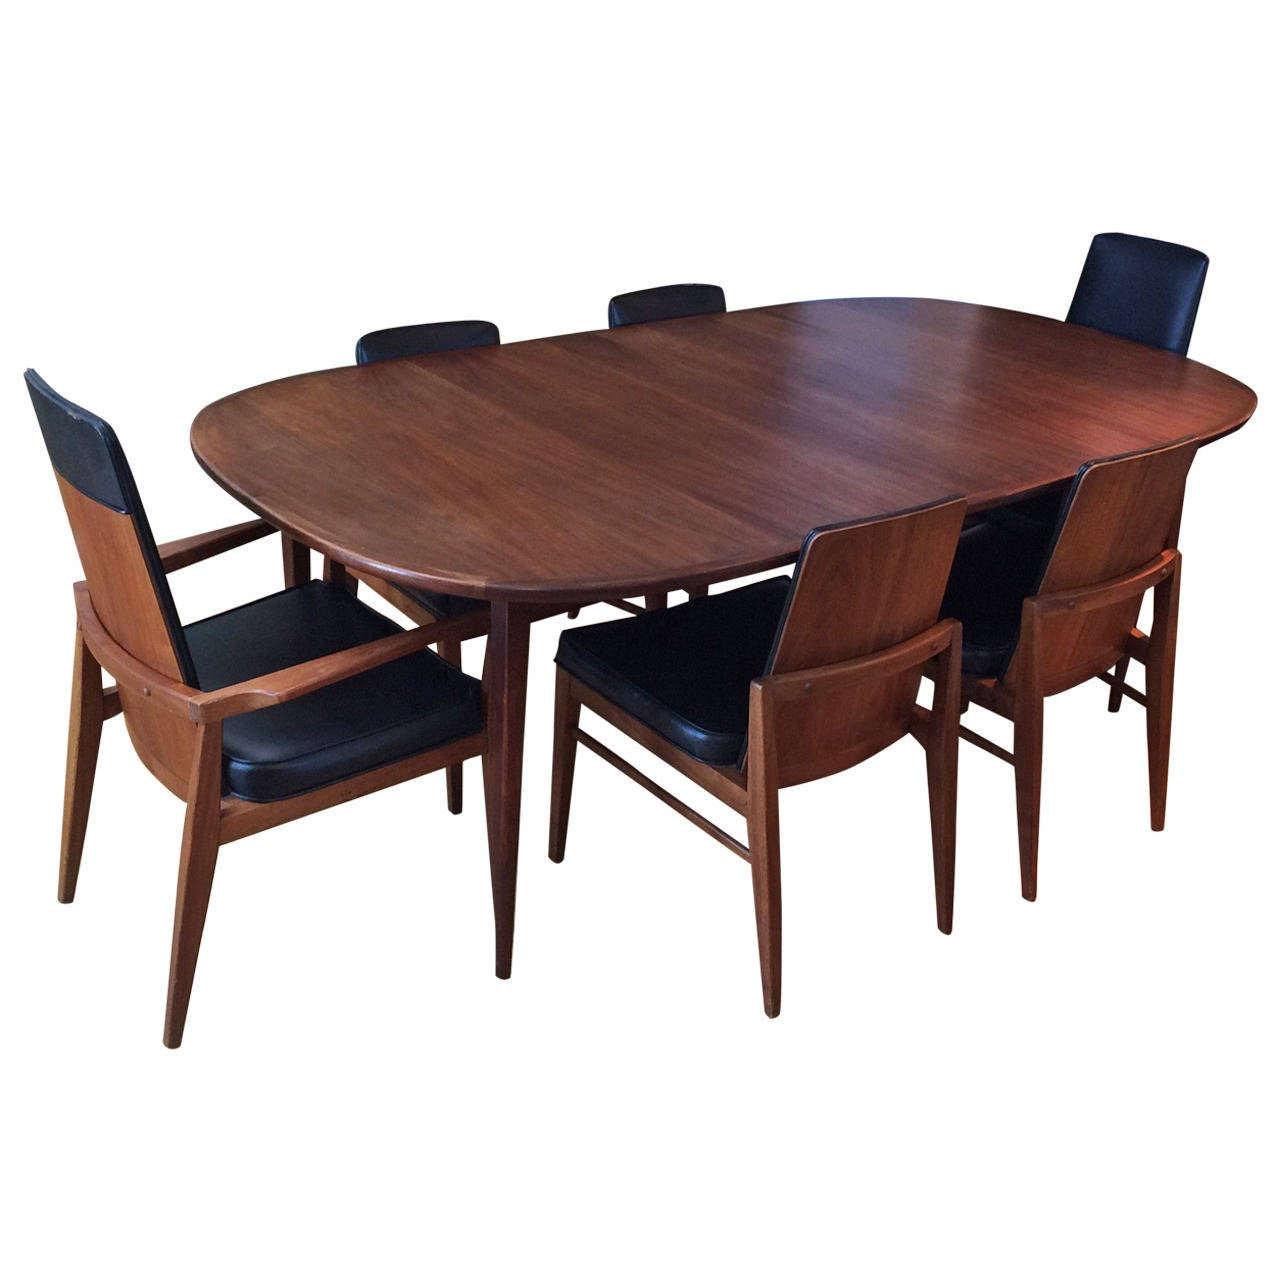 Mid century modern walnut dining set at 1stdibs for Dining room tables 1940s